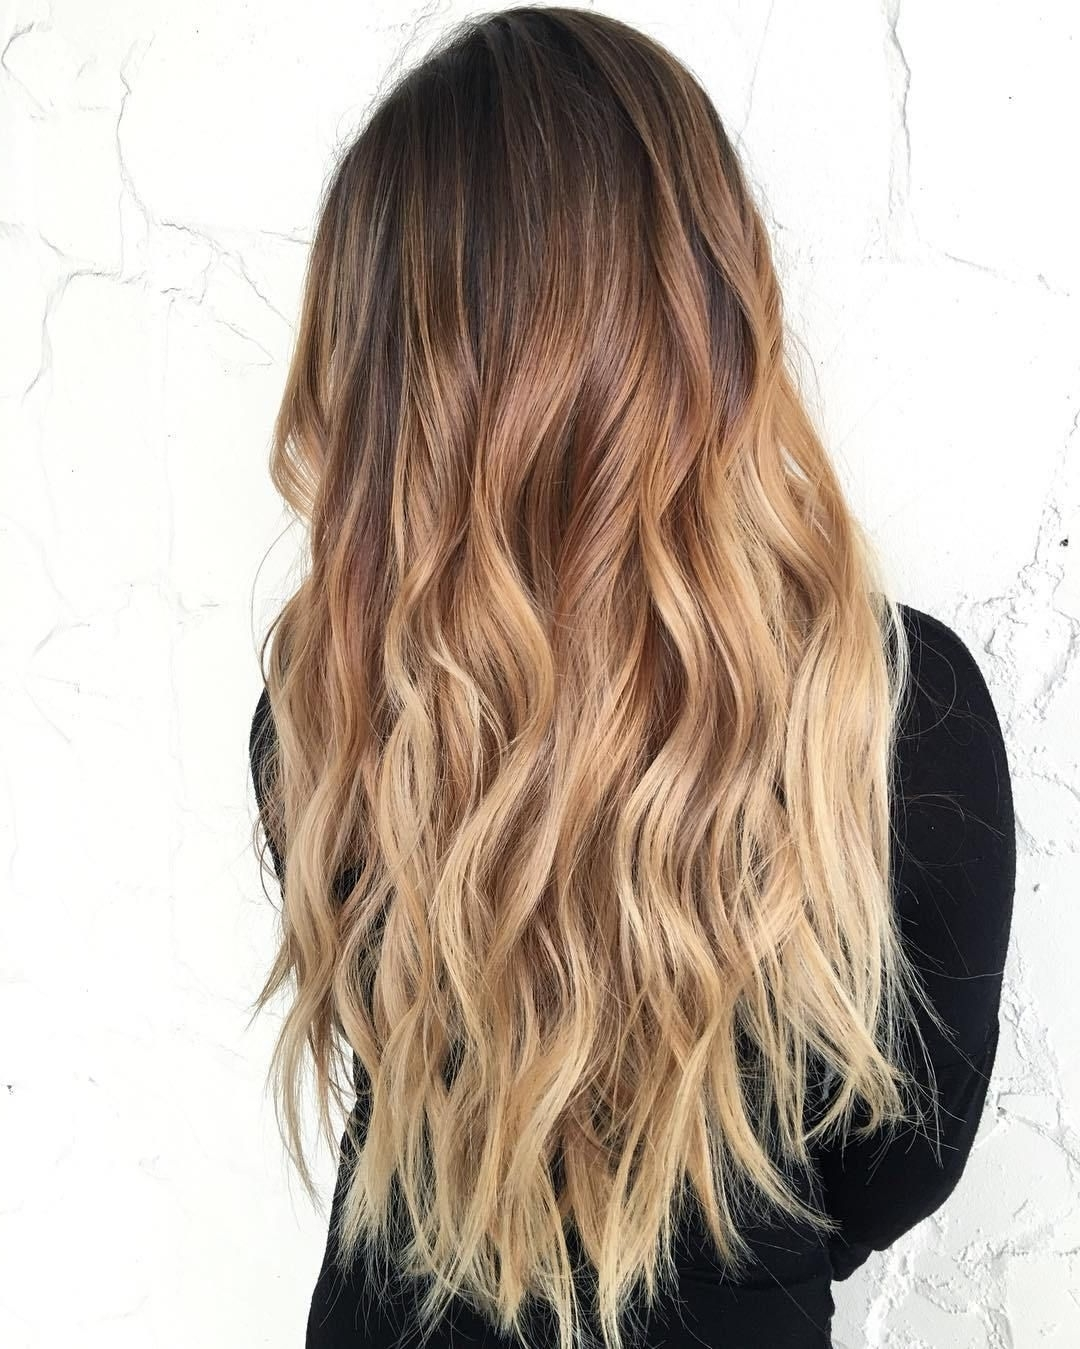 Most Current Subtle Brown Blonde Ombre Hairstyles Inside 60 Best Ombre Hair Color Ideas For Blond, Brown, Red And Black Hair (View 5 of 20)